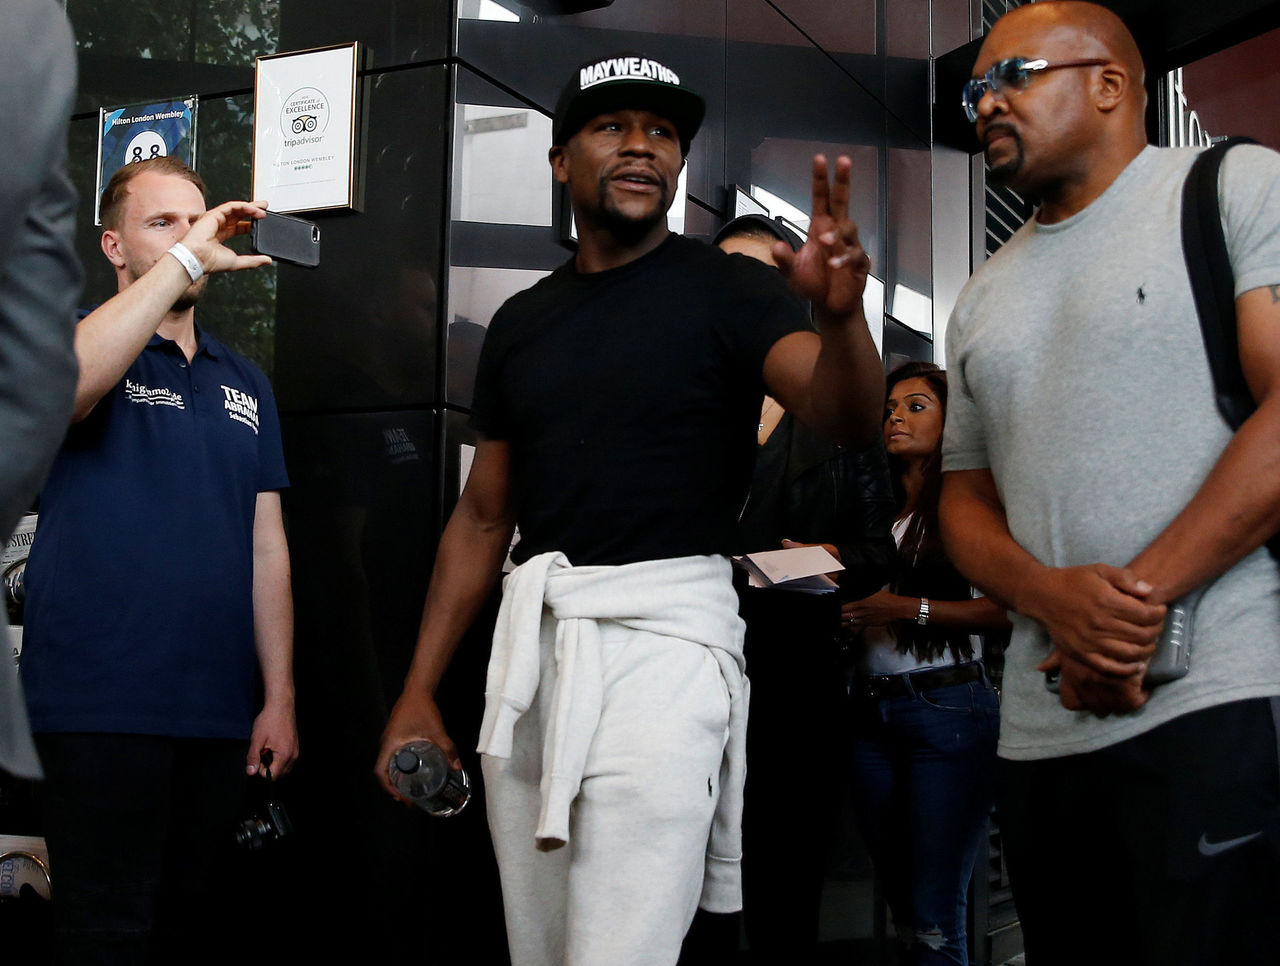 Cropped 2017 07 14t133446z 1389210170 rc17f2fc7cb0 rtrmadp 3 boxing mayweather mcgregor